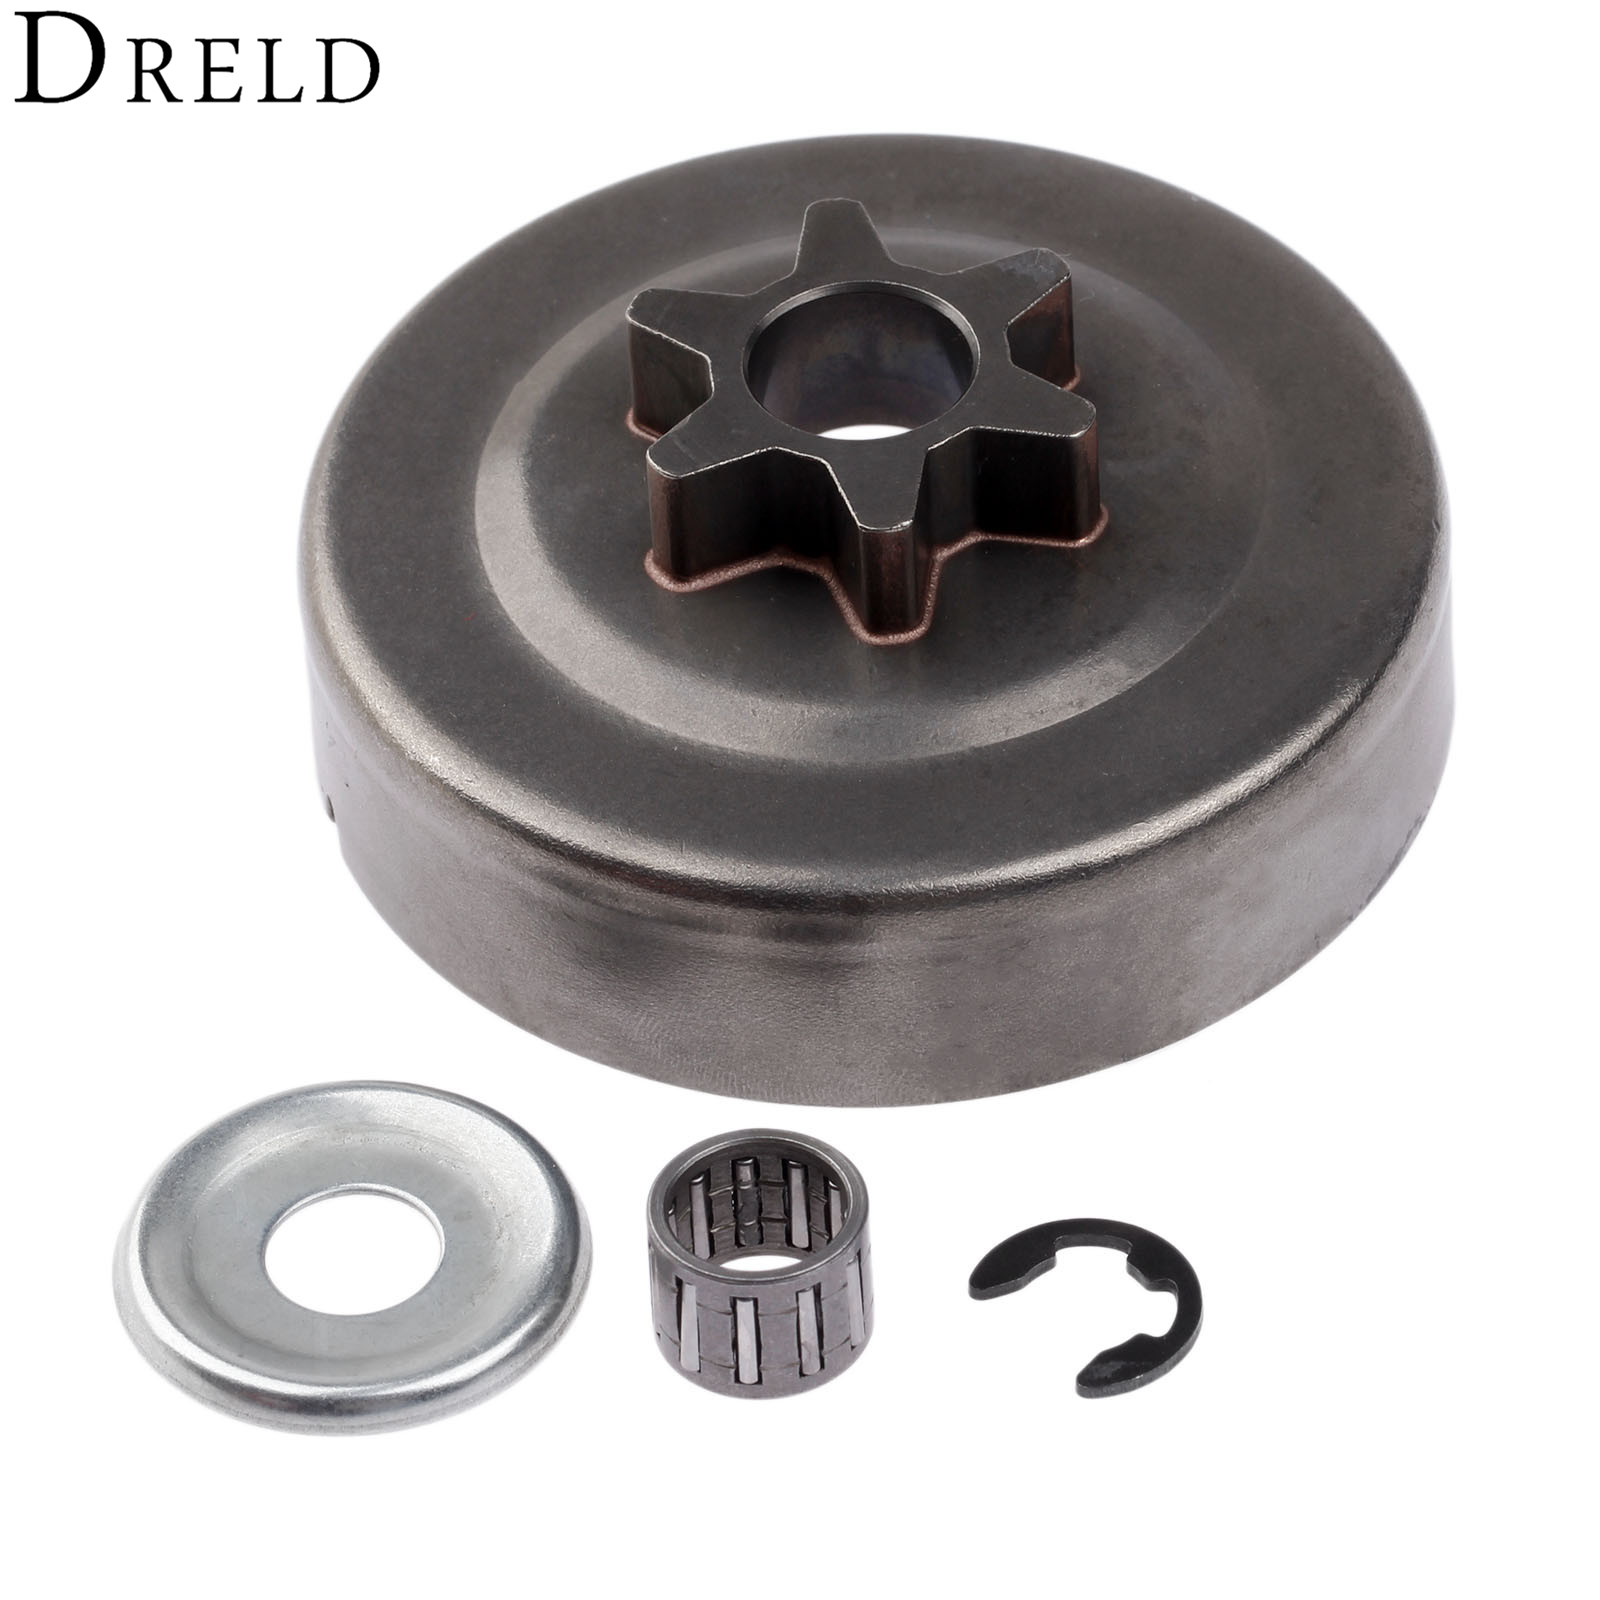 DRELD 3/8 6T Clutch Drum Sprocket Washer E-Clip Kit For STIHL Chainsaw 017 018 021 023 025 MS170 MS180 MS210 MS230 MS250 1123 new 3pcs set chrome vanadium steel socket adapter hex shank to 1 4 3 8 1 2 extension drill bits bar hex bit set power tools